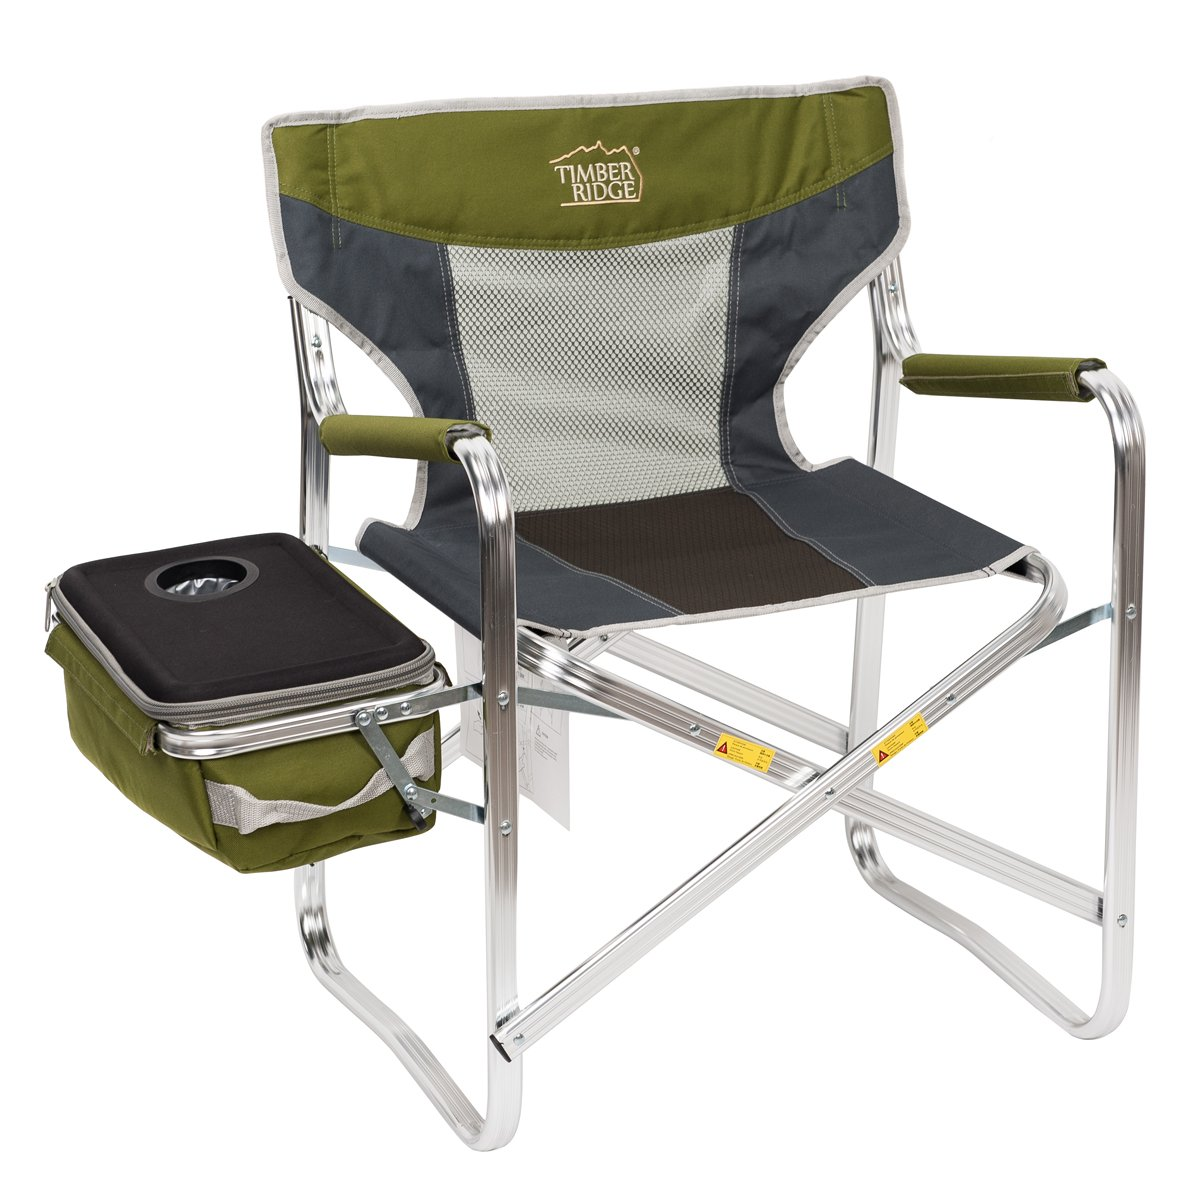 Timber Ridge Director's Chair Additional Cooler Bag Detachable Breathable Back Folding Lightweight for Camping Portable Supports 300lbs